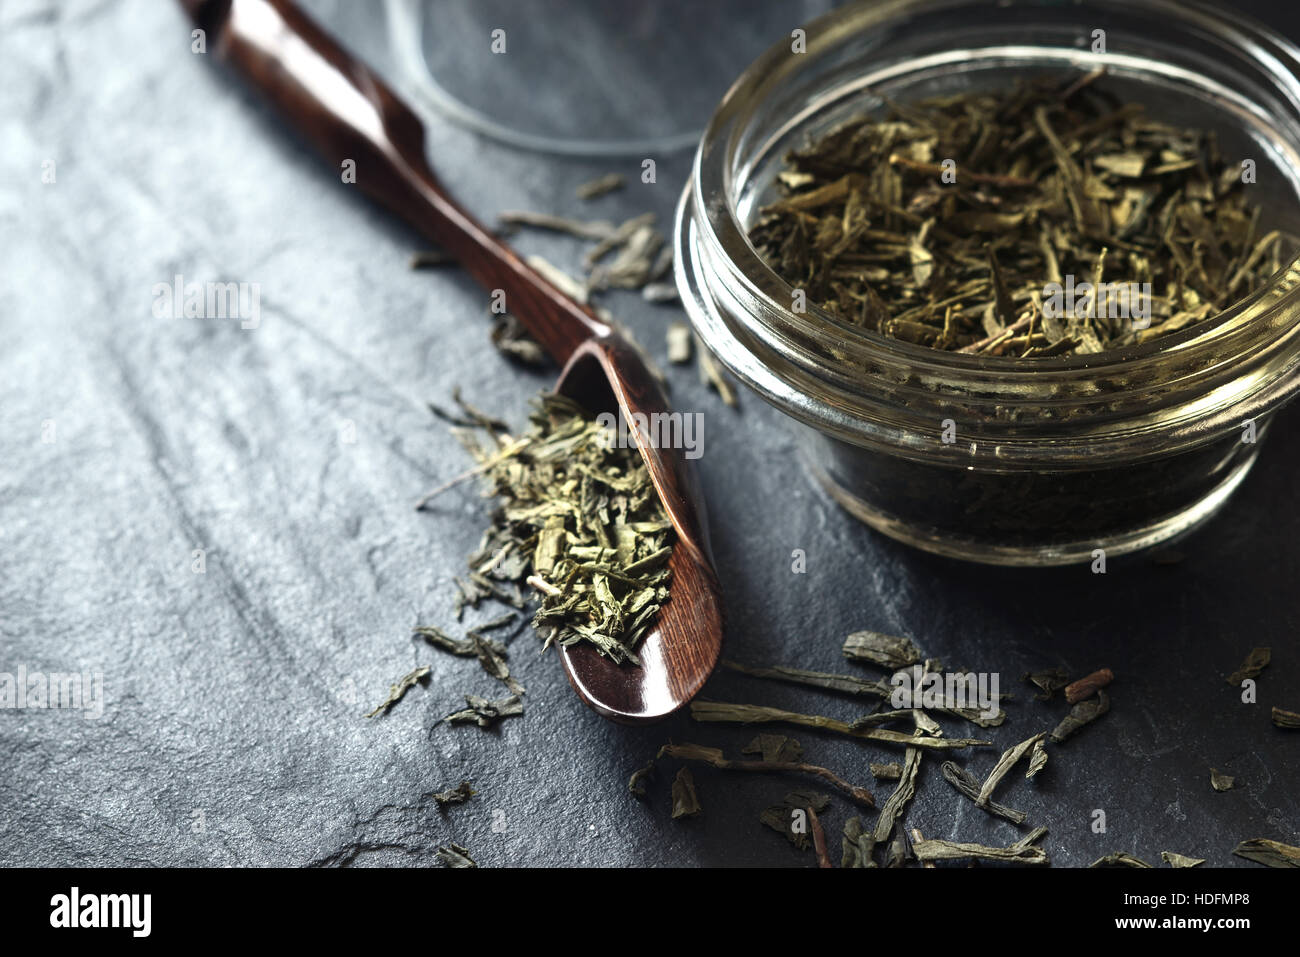 Set for tea preparation on the stone dark stone table horizontal - Stock Image